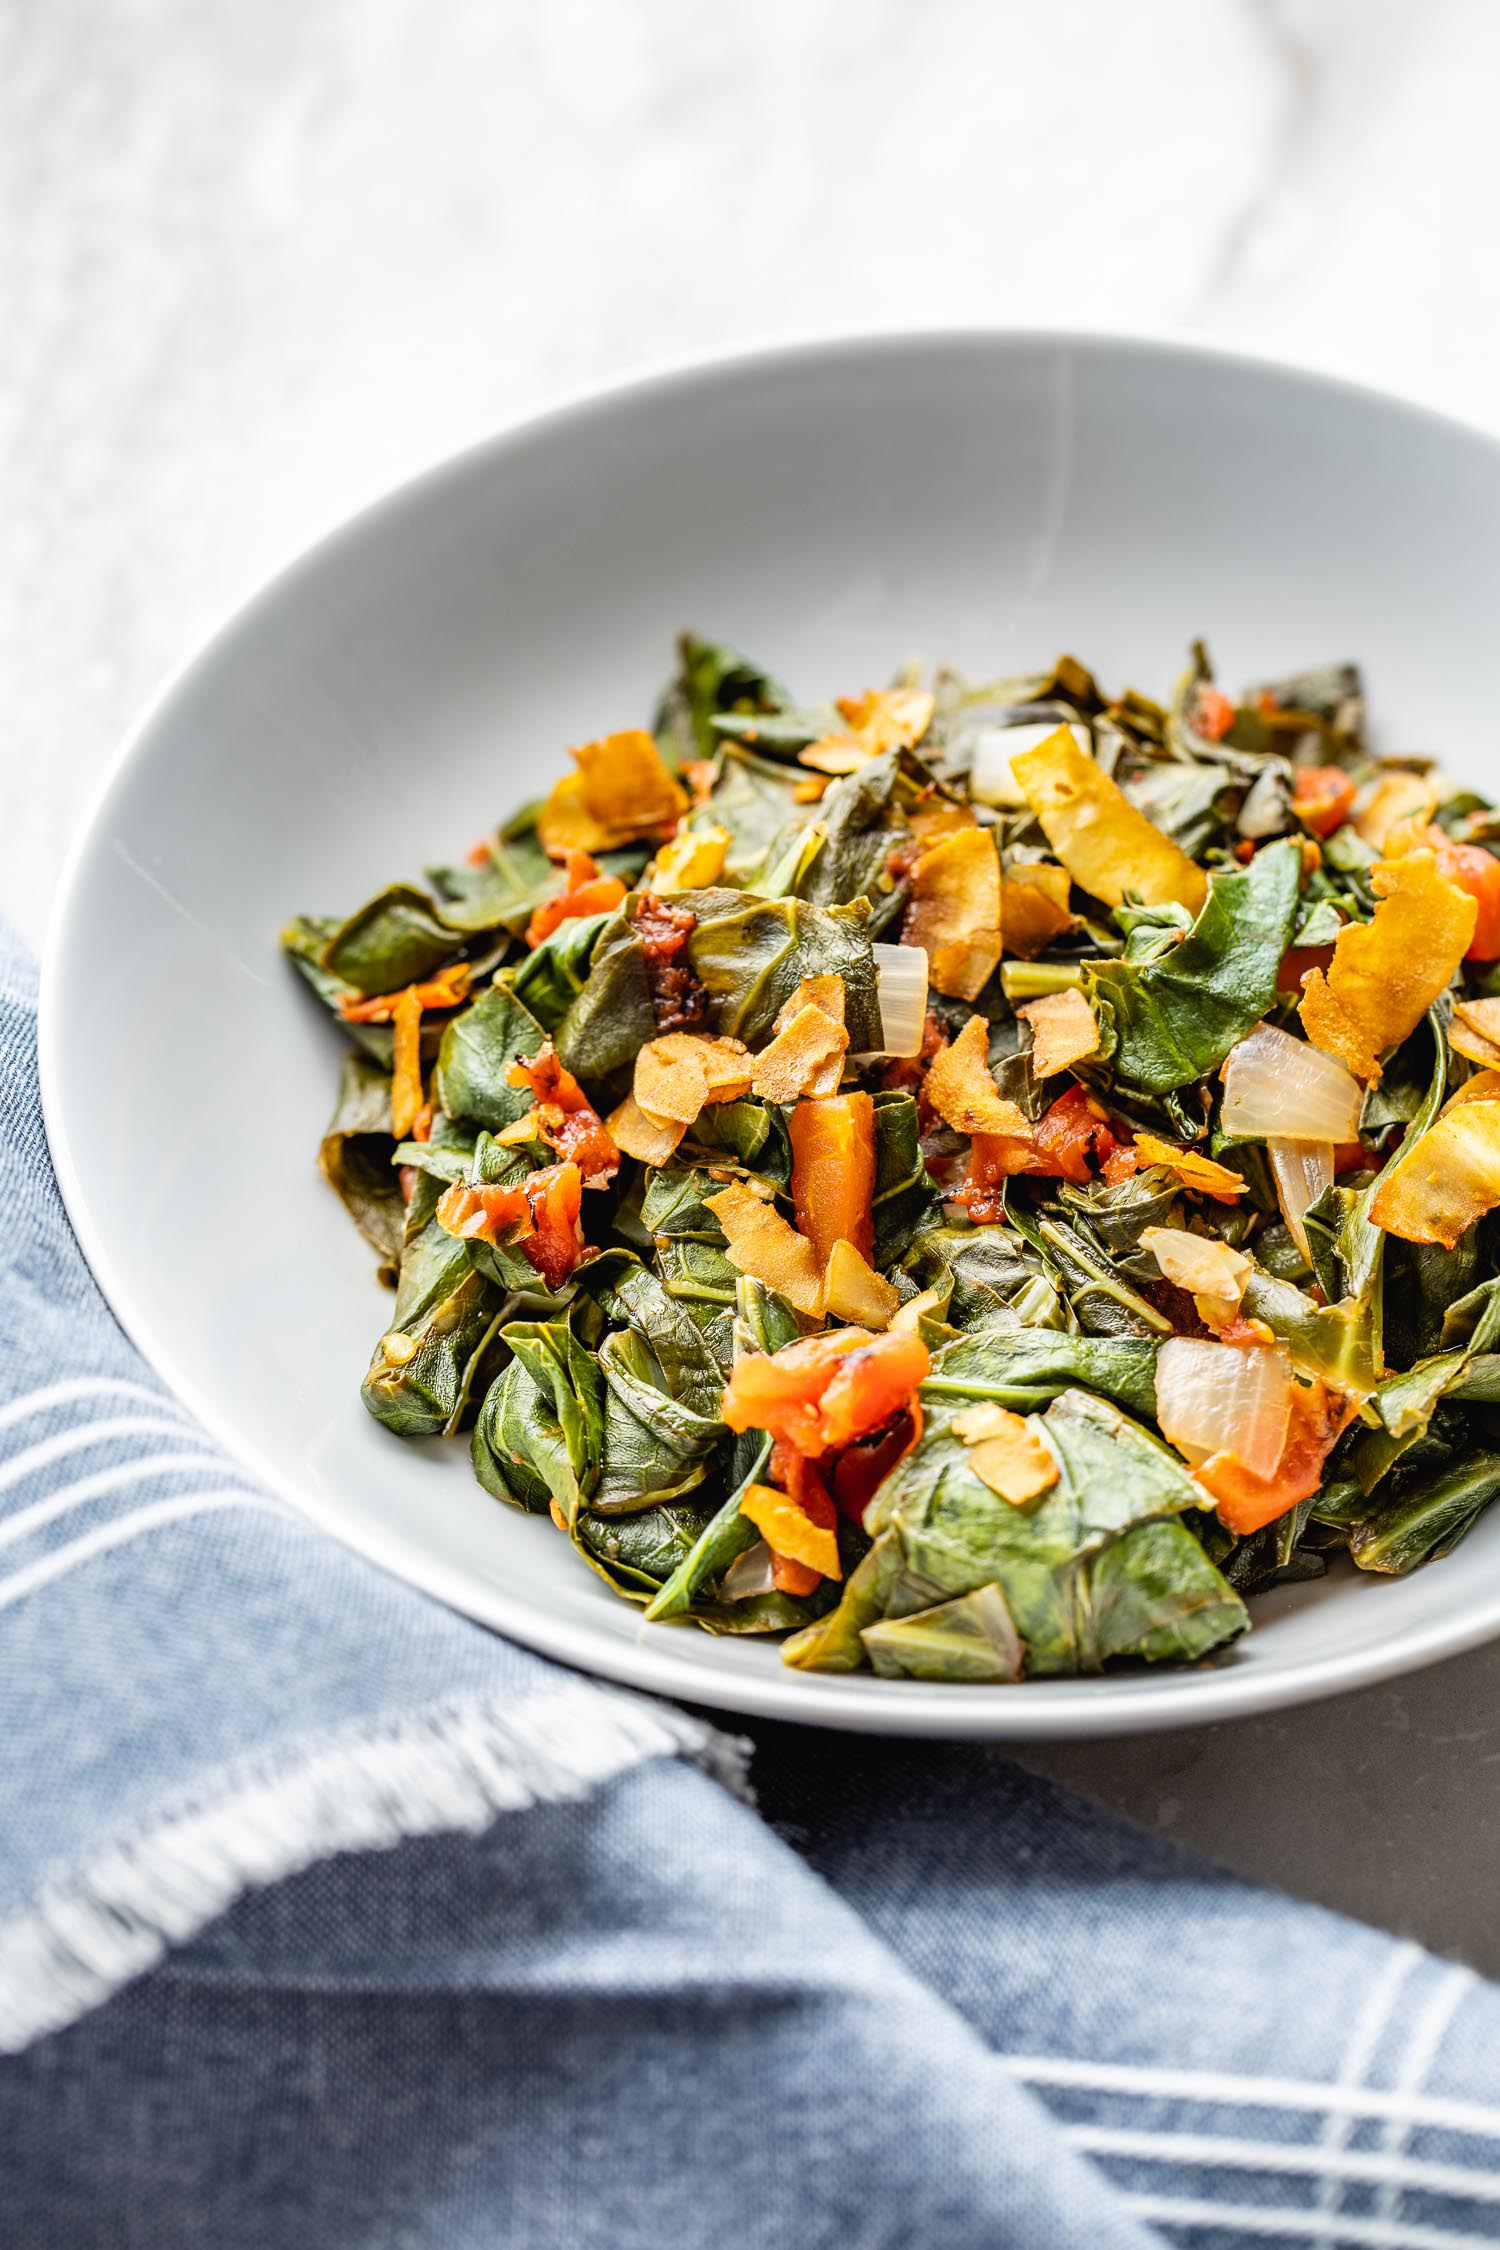 a blue fringed napkin is gathered beside a white shallow glass bowl of a hearty, vegetarian collard greens recipe with a smoky meatless topping